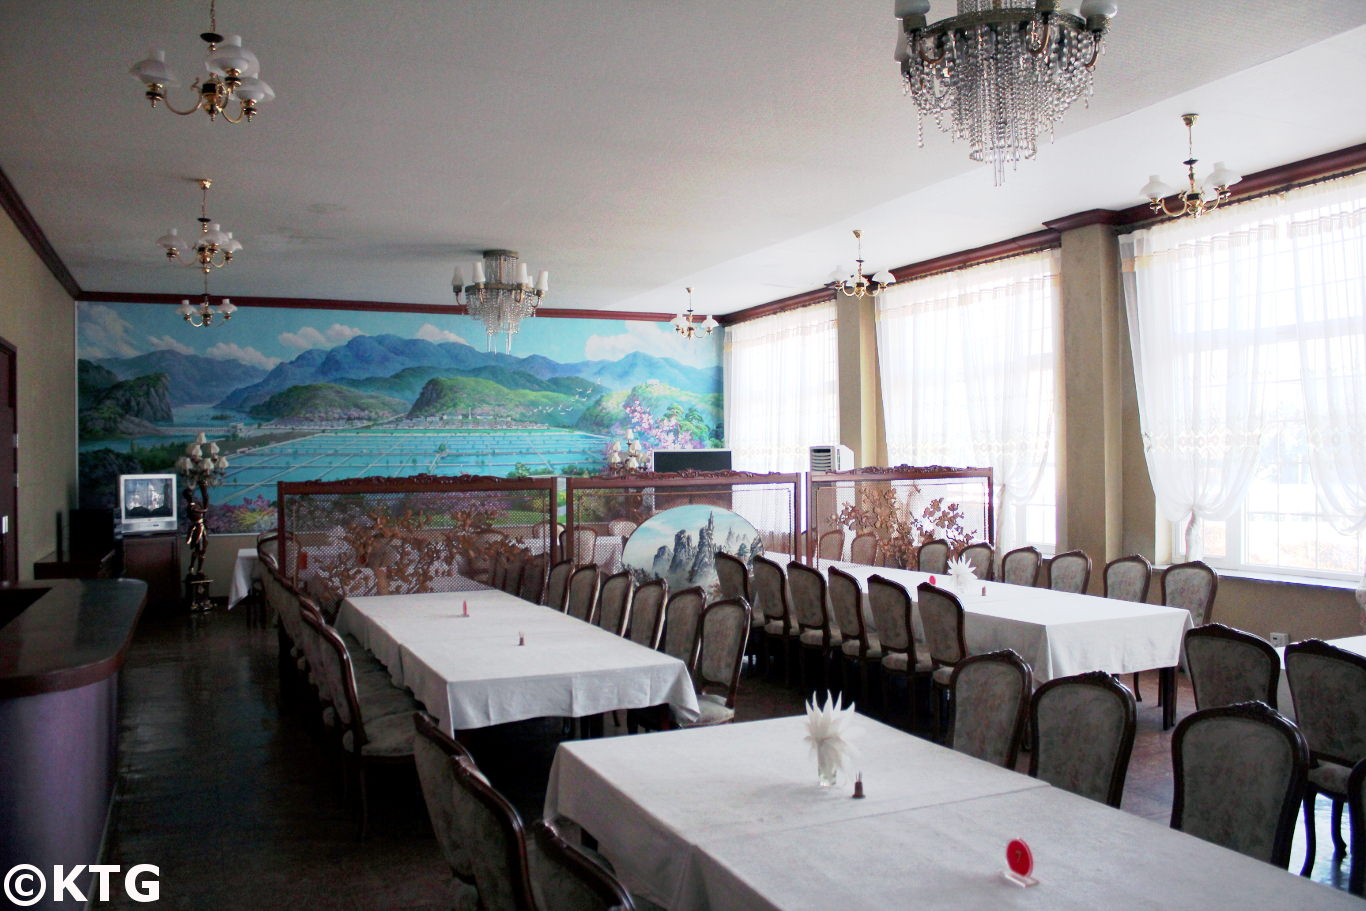 Restaurant at the Sariwon March 8 Hotel in North Korea, DPRK. Picture taken by KTG Tours. What you see in the picture is a local fish farm, Bomanri, located between Pyongyang and Kaesong in North Hwanghae Province